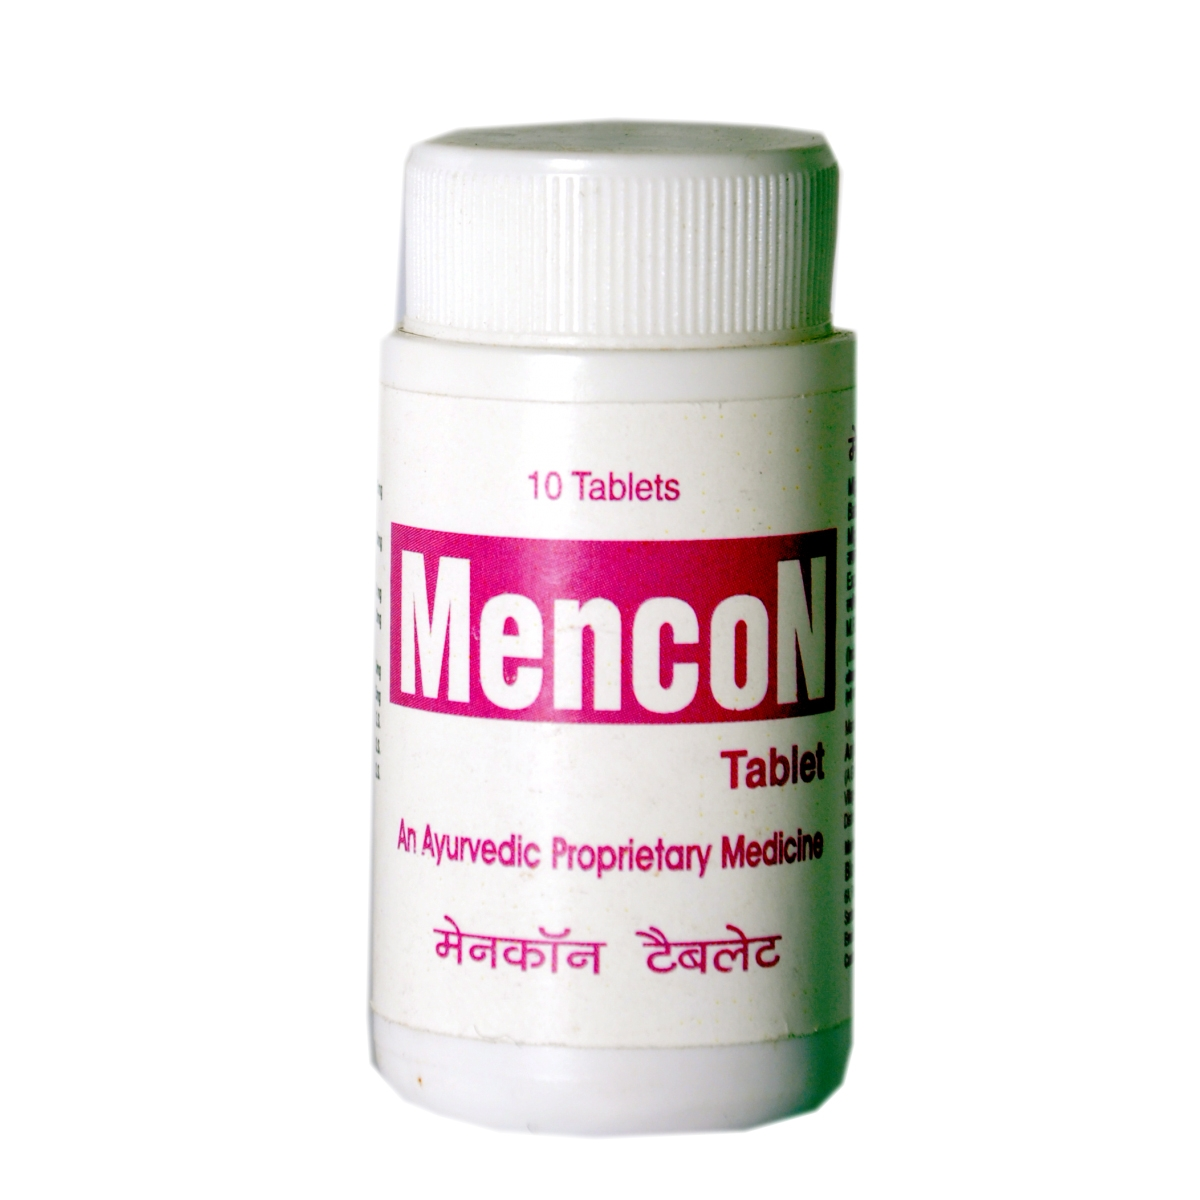 Mencon Tablet In Birbhum